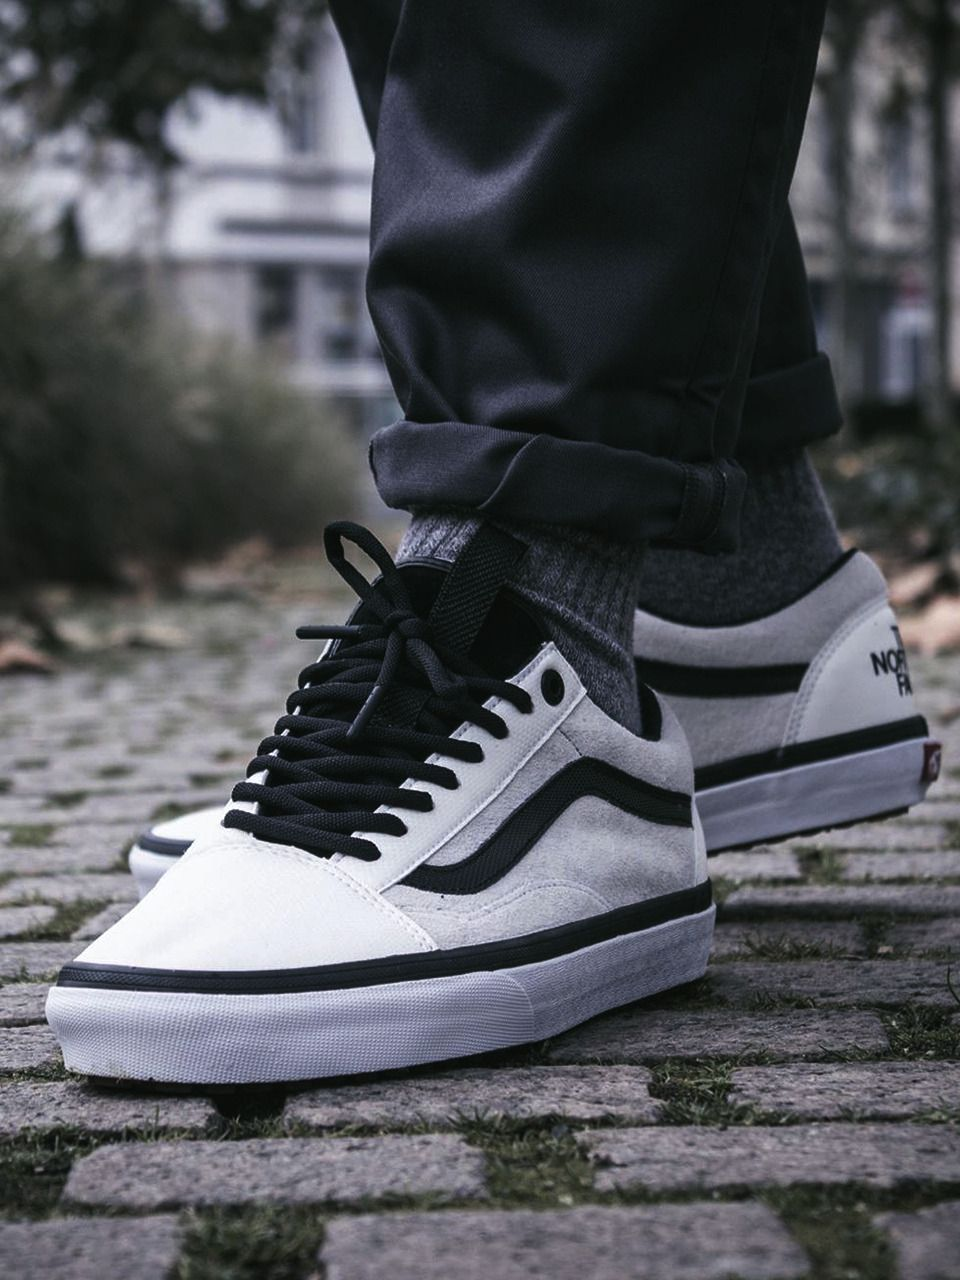 6a01d812ad The North Face x Vans Old Skool - 2017 (by chrisflanell) Buy here ...